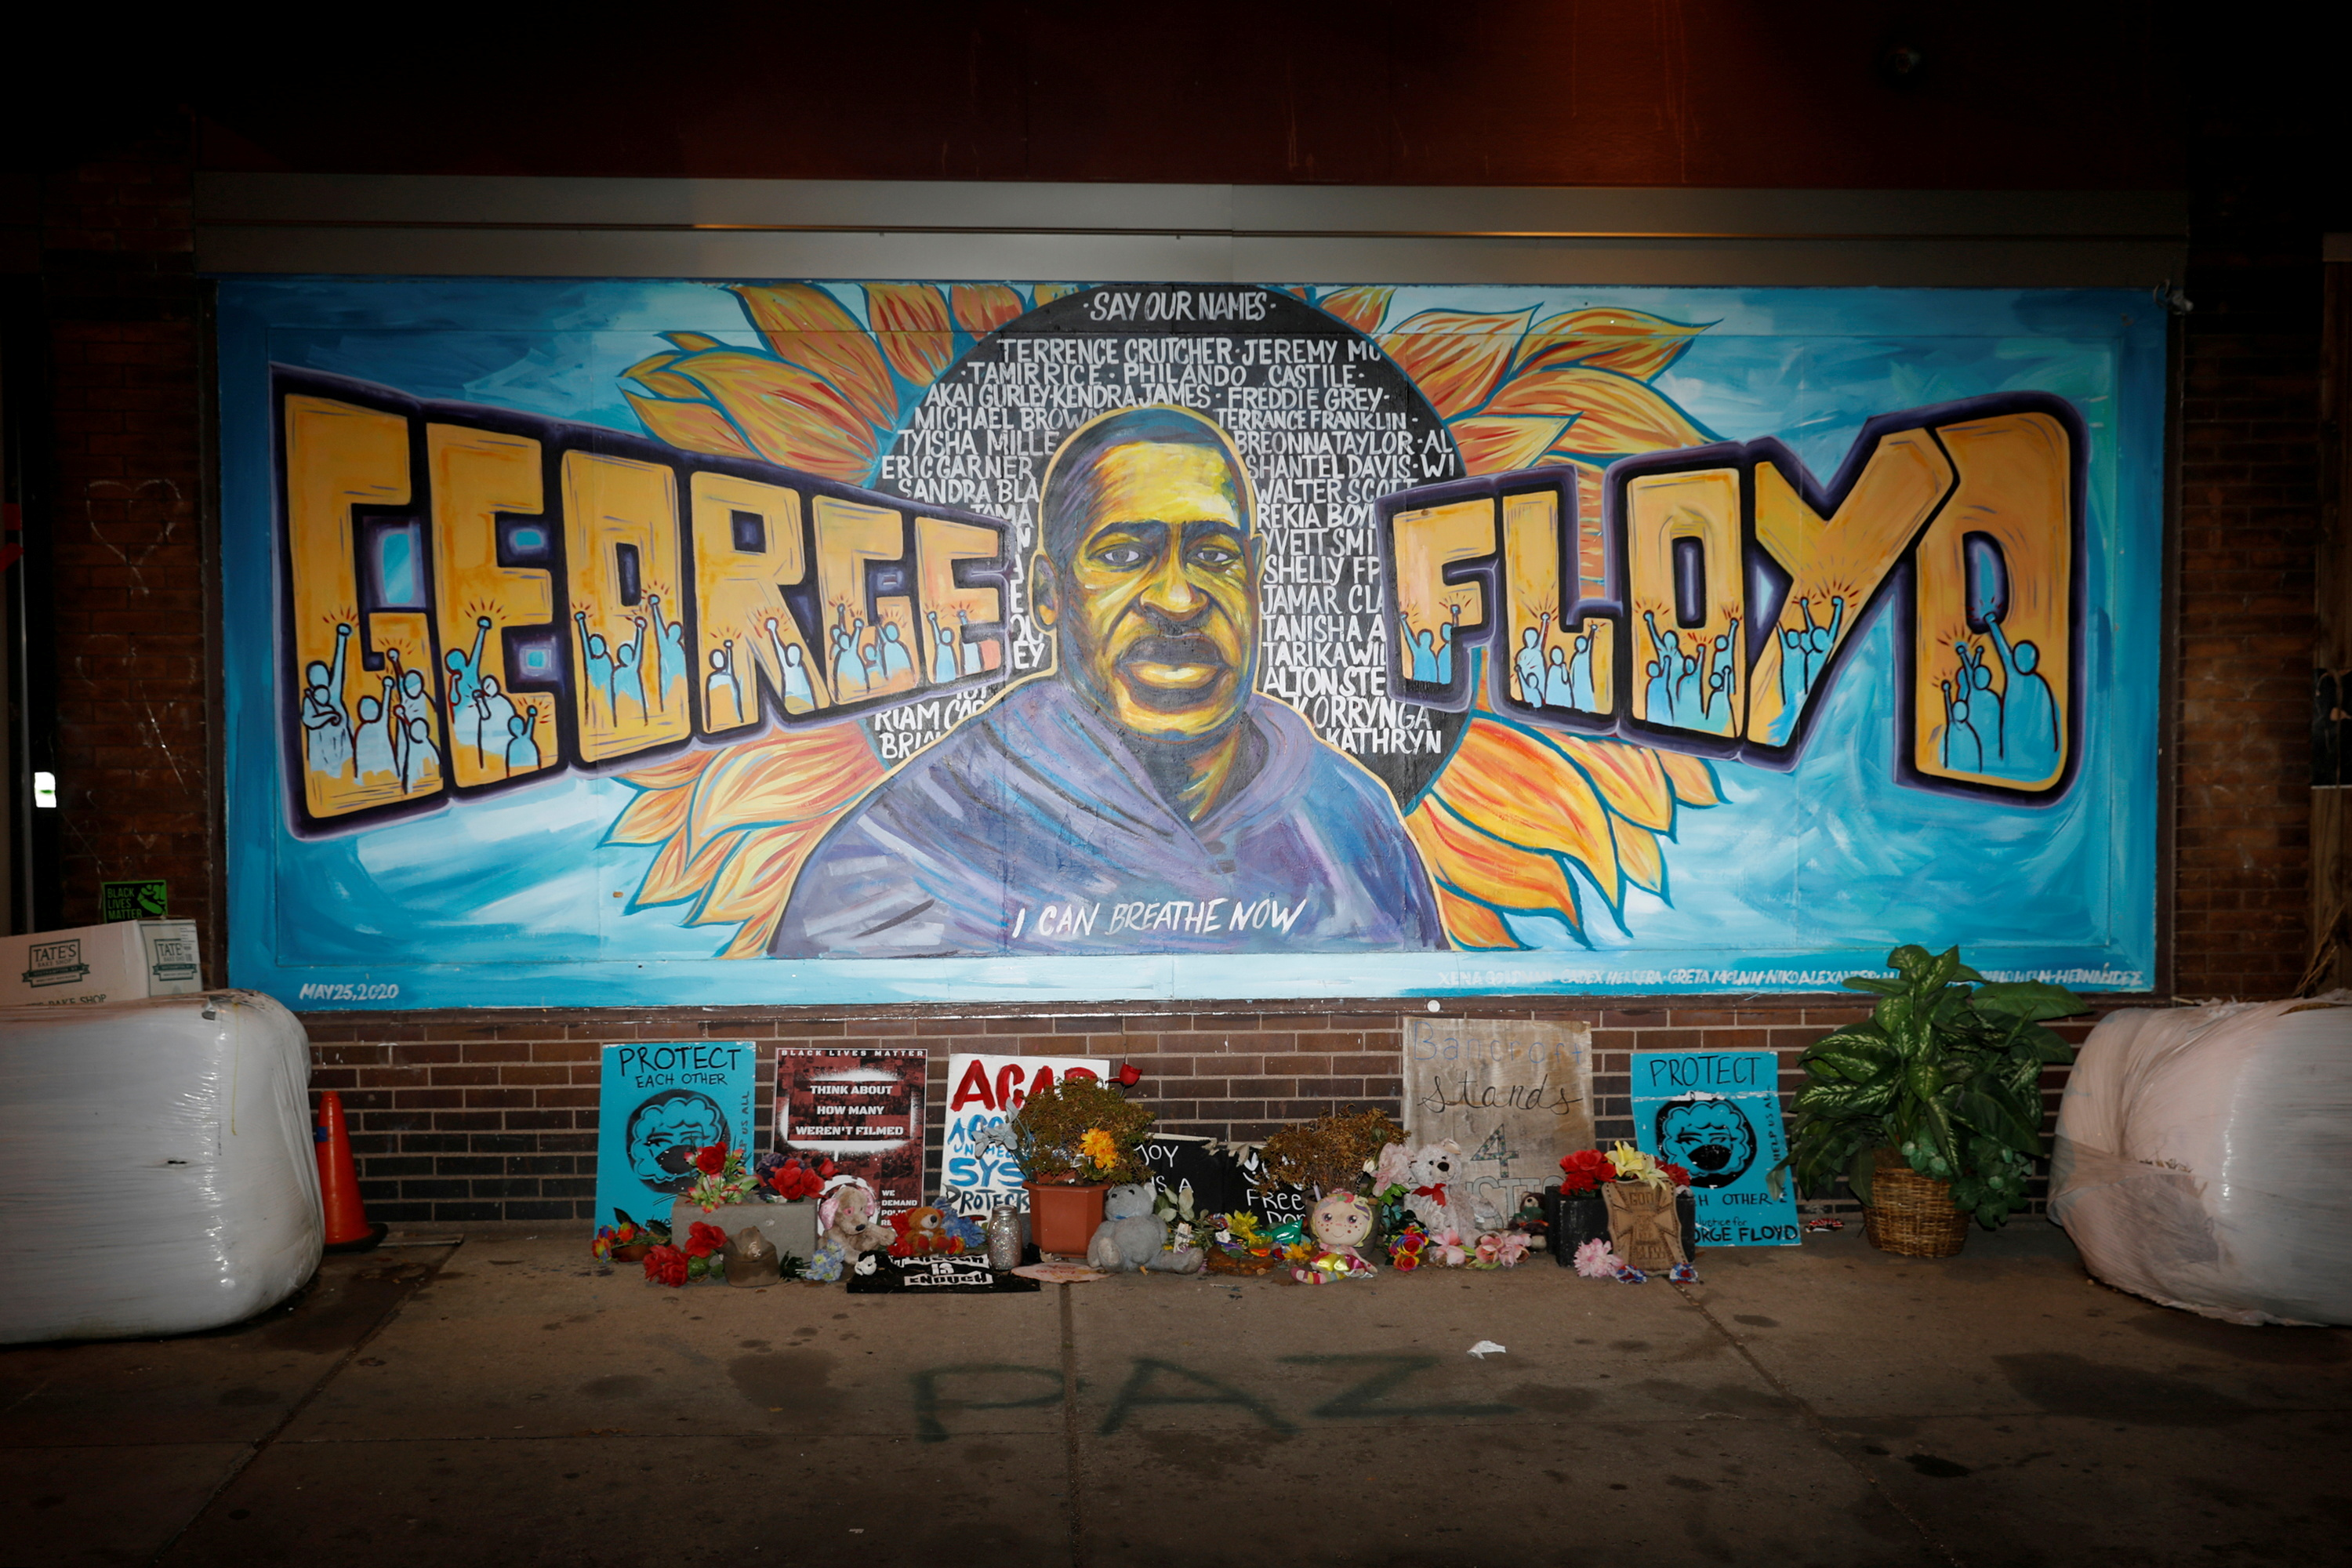 A view of the George Floyd mural at 38th Street and Chicago Avenue a day before opening statements in the trial of former police officer Derek Chauvin, who is facing murder charges in the death of George Floyd, in Minneapolis, Minnesota, U.S., March 28, 2021. REUTERS/Octavio Jones/File Photo